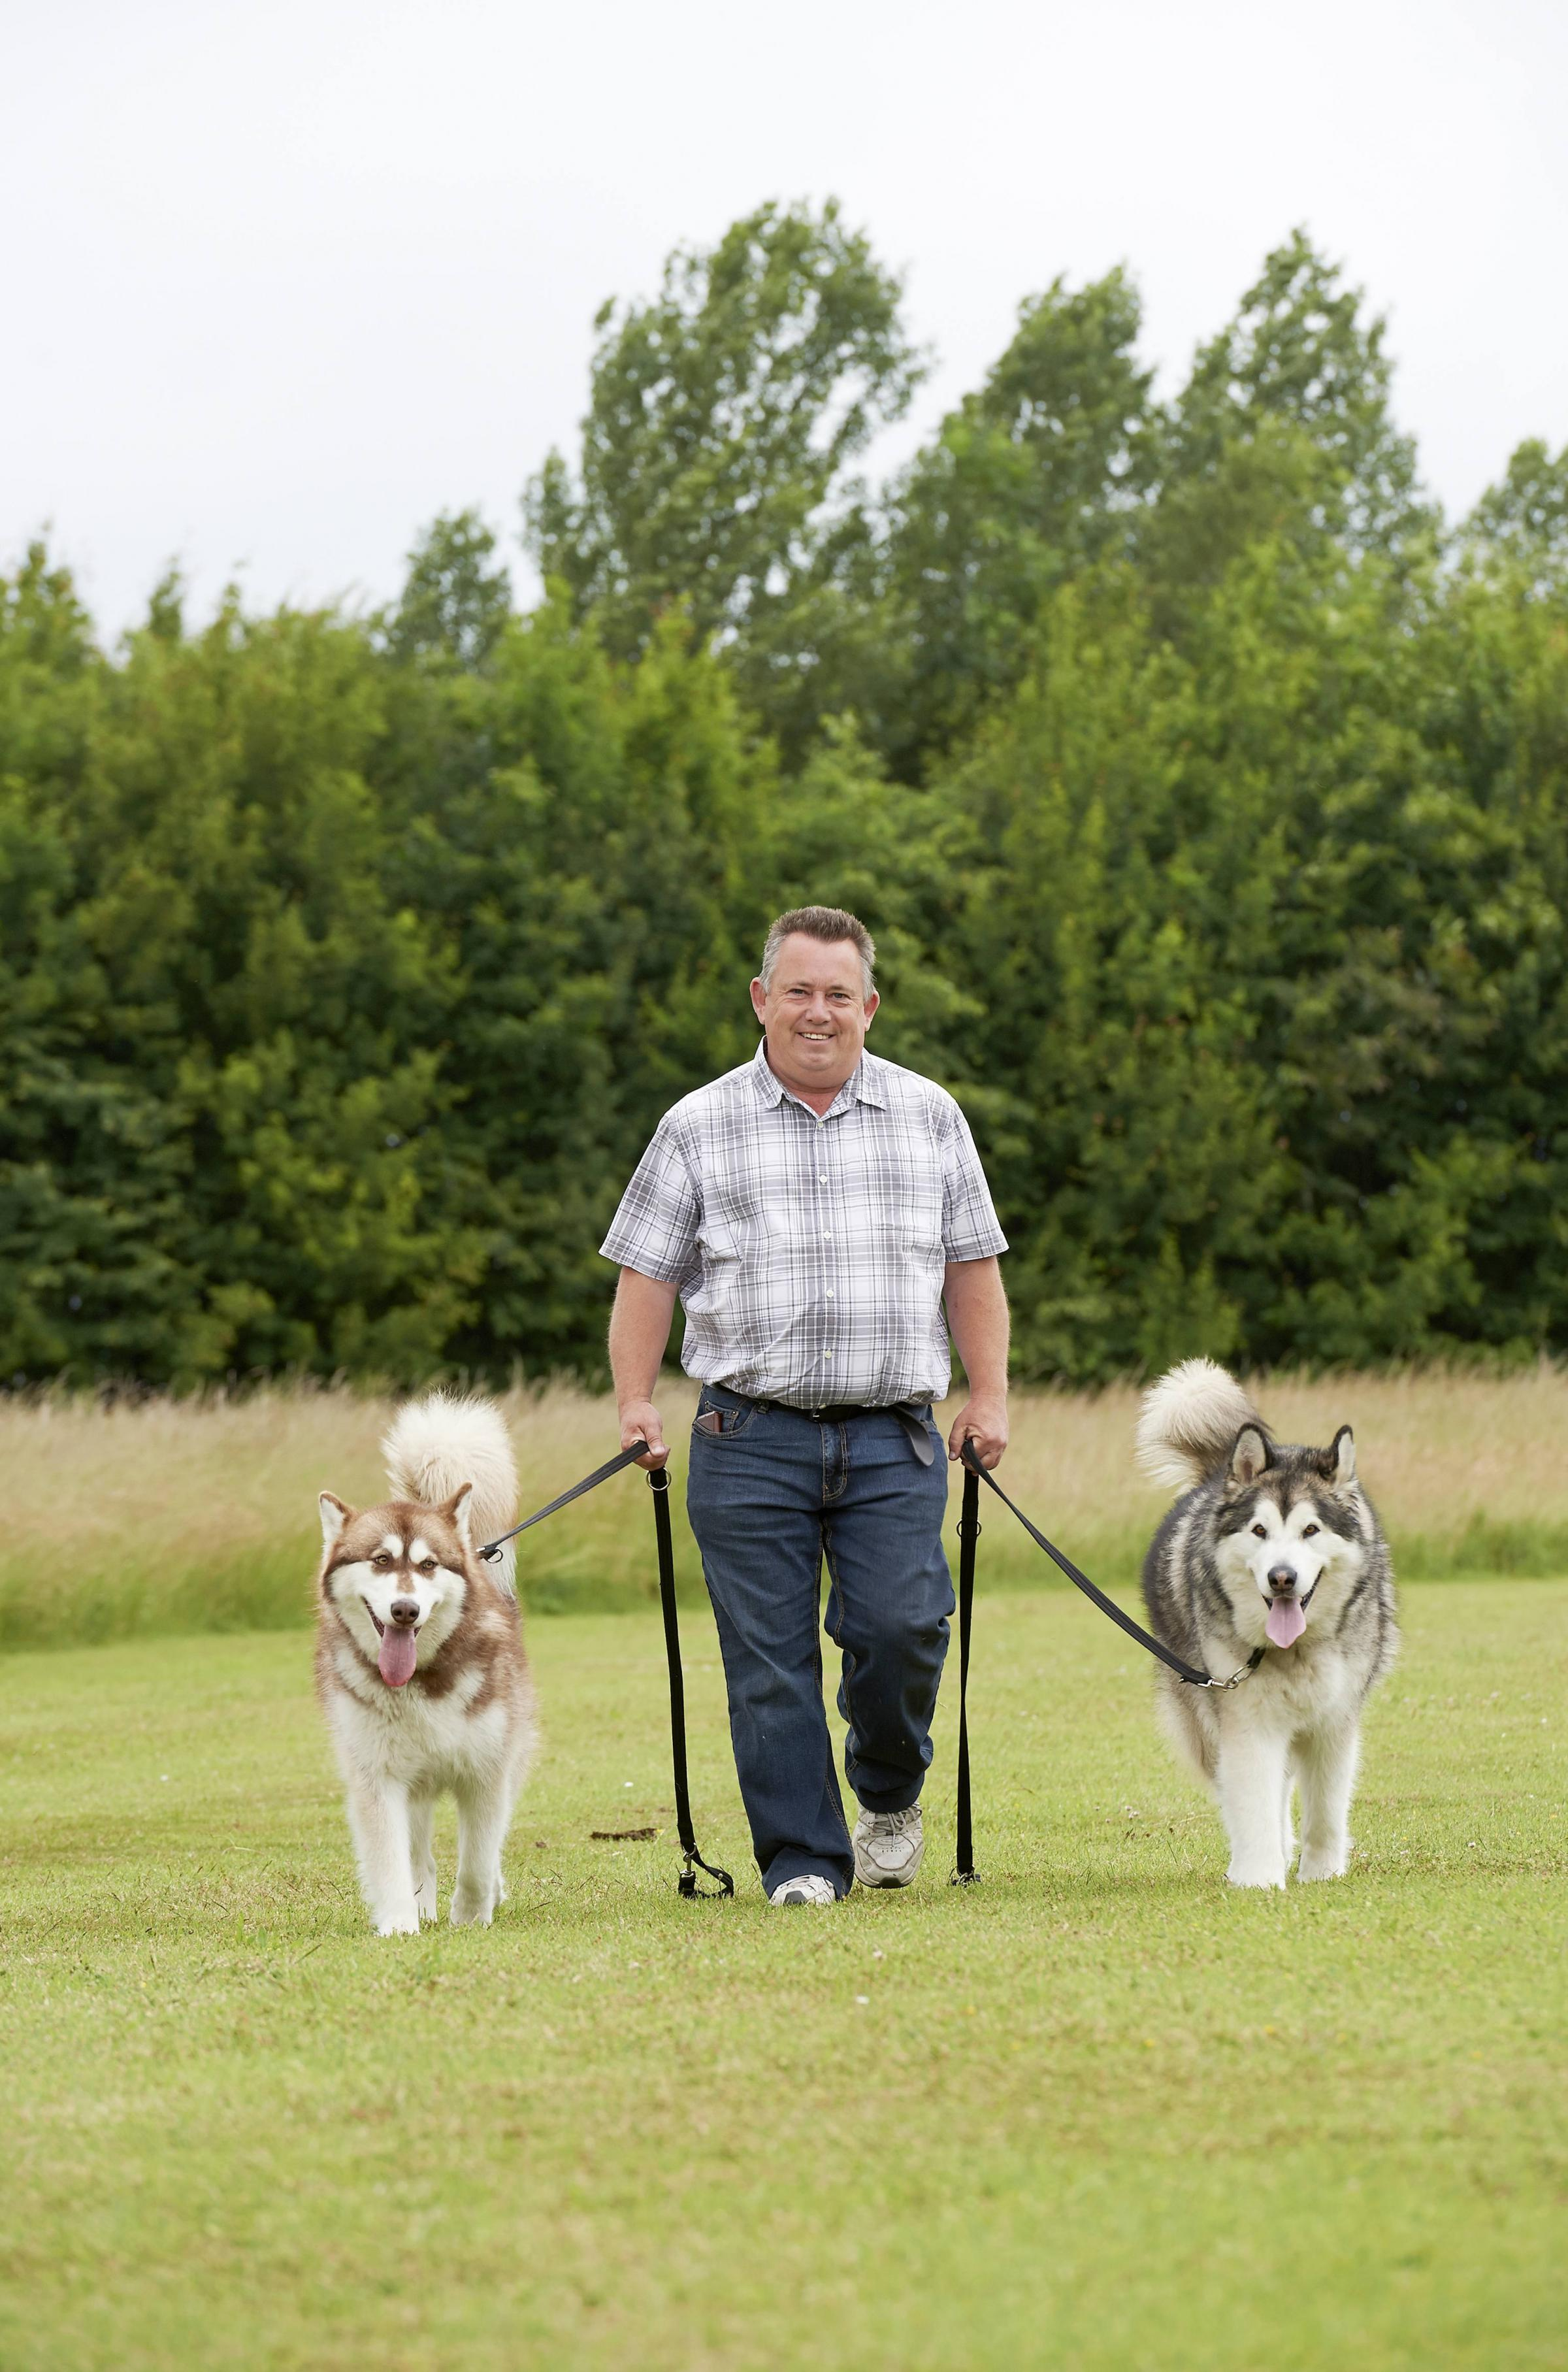 Helihounds participant Paul Levine and his Alaskan Malamutes